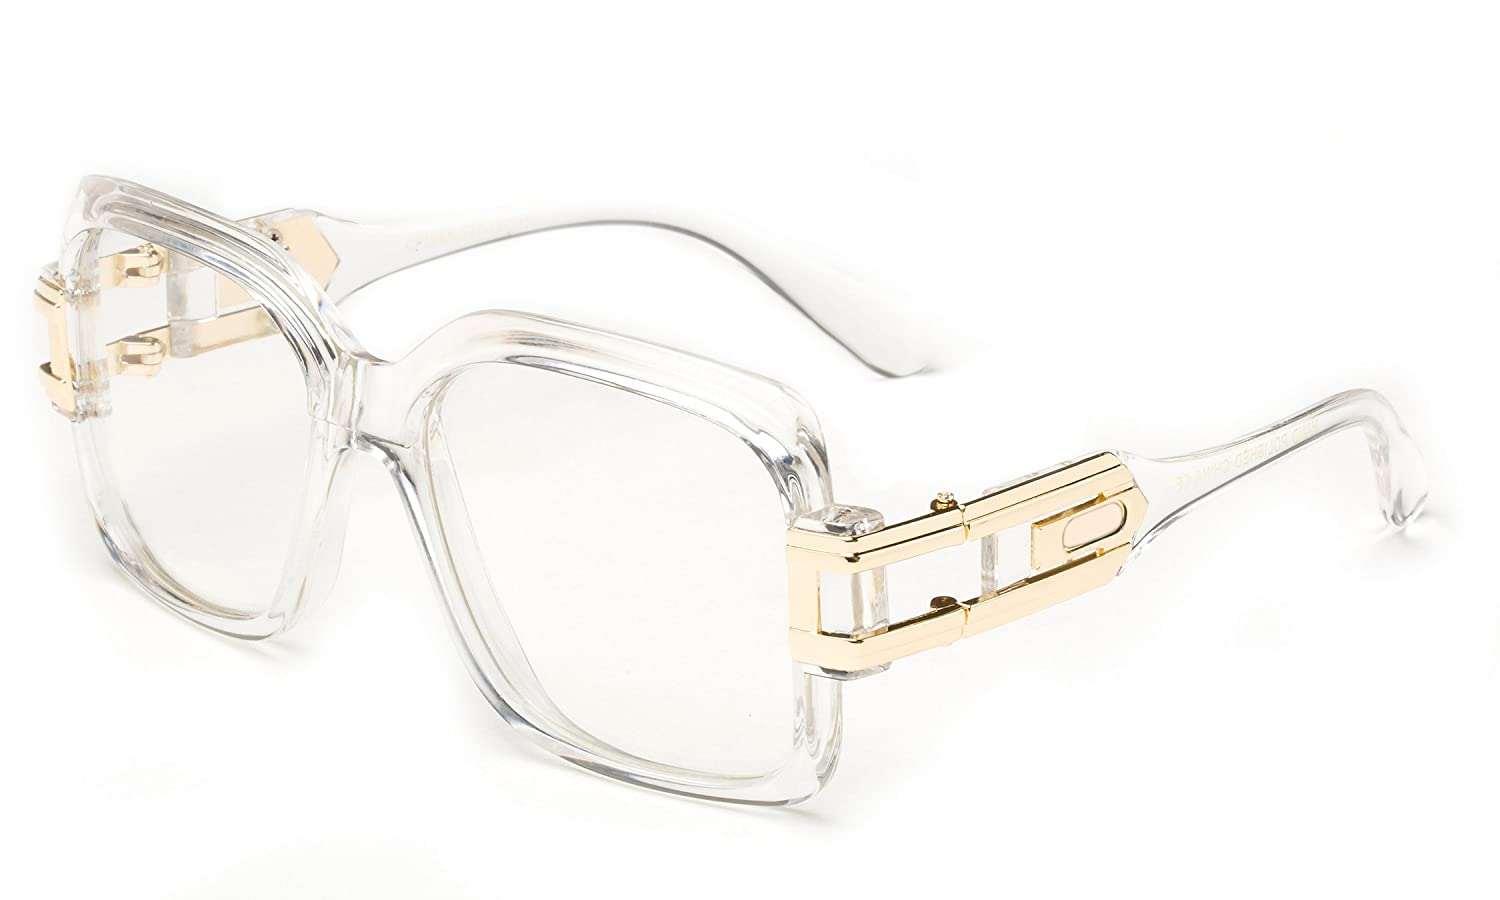 Tainted Oversized High Fashion Flat Top Metal Chain Arm Clear Lens Flat Top Aviator Glasses Newbee Fashion